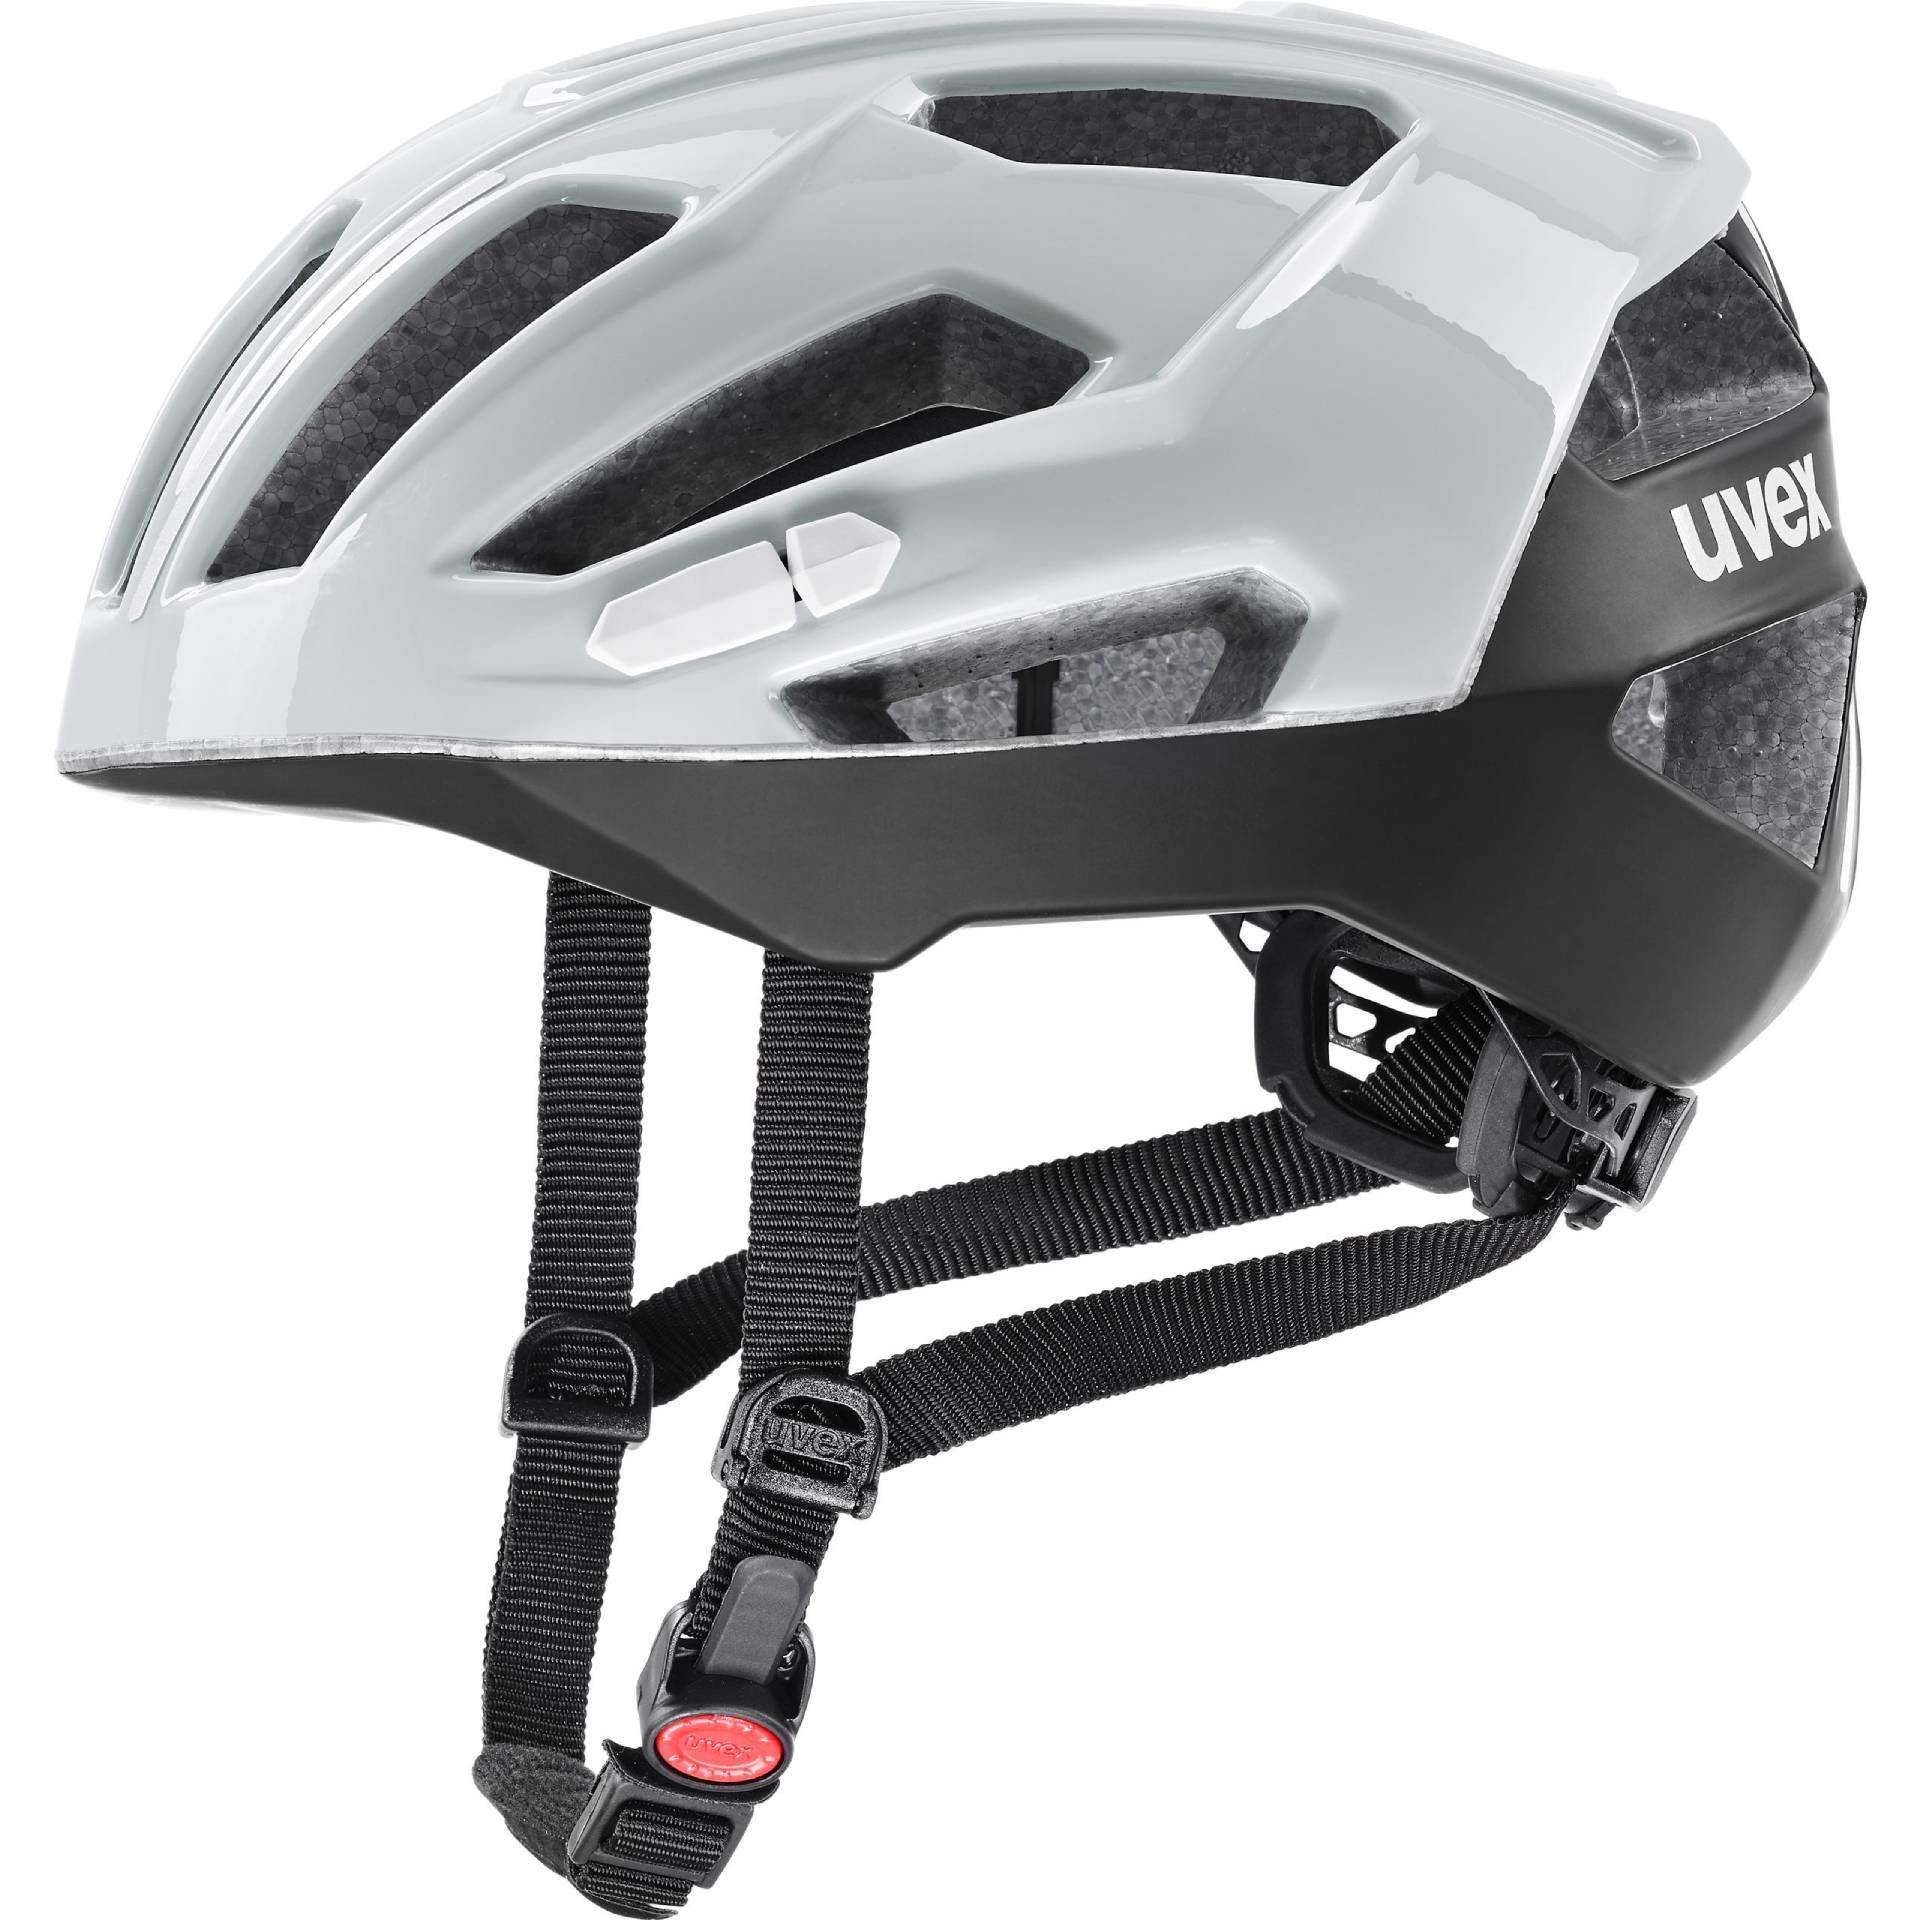 KASK ROWEROWY UVEX GRAVEL X PAPYRUS 41|0|044|02